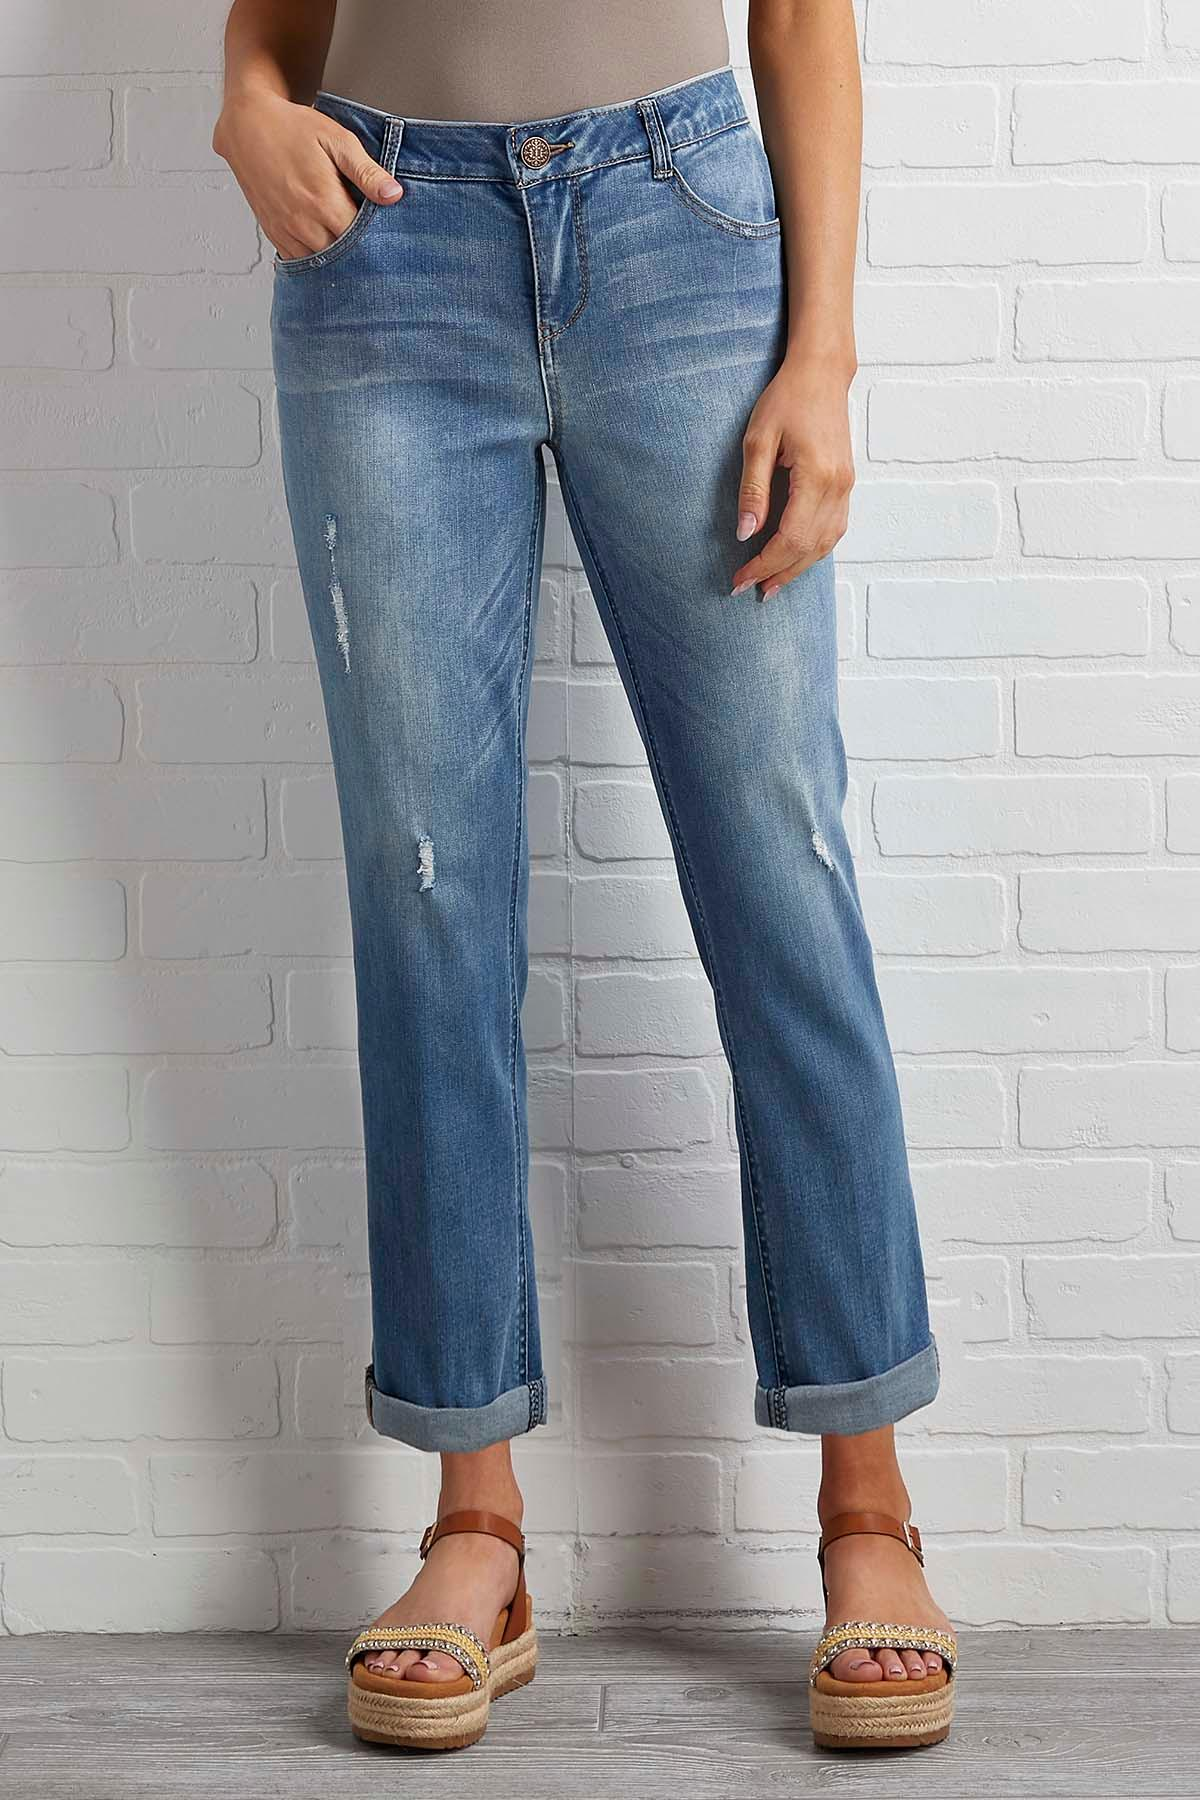 Break Up With Your Girlfriend Jeans